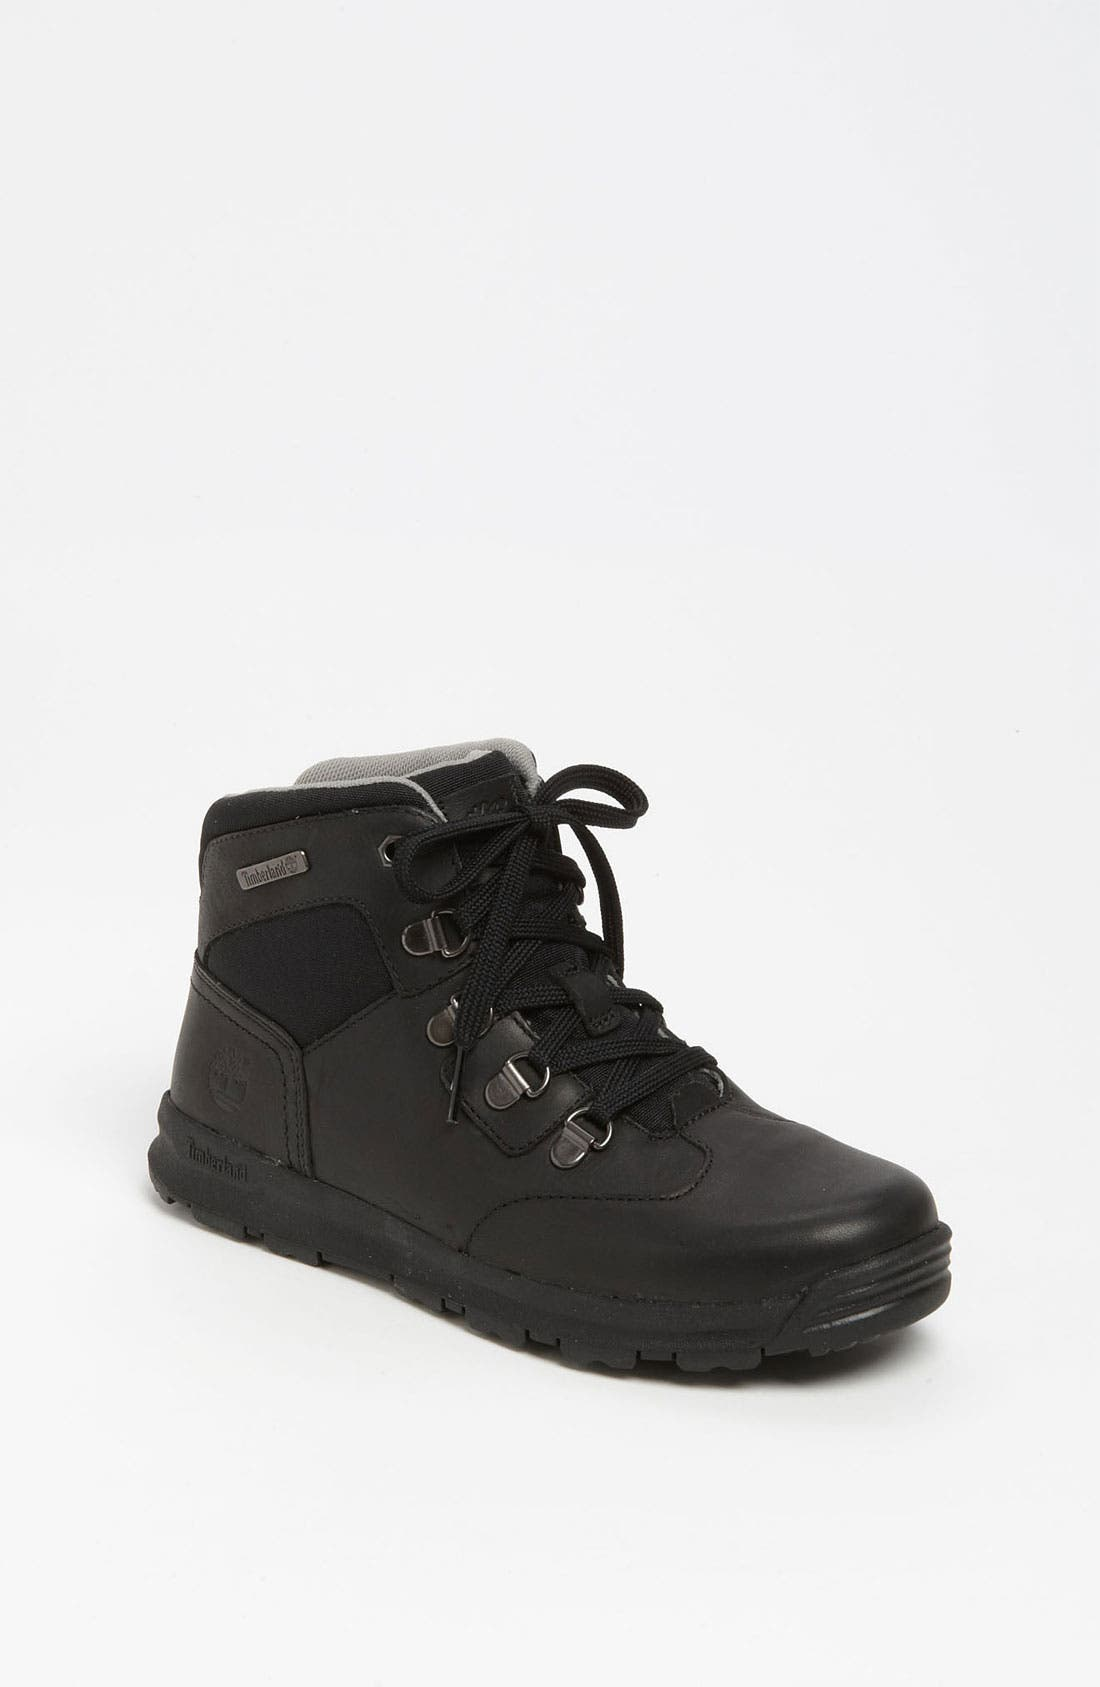 Alternate Image 1 Selected - Timberland Earthkeepers® 'Scramble' Boot (Toddler, Little Kid & Big Kid)